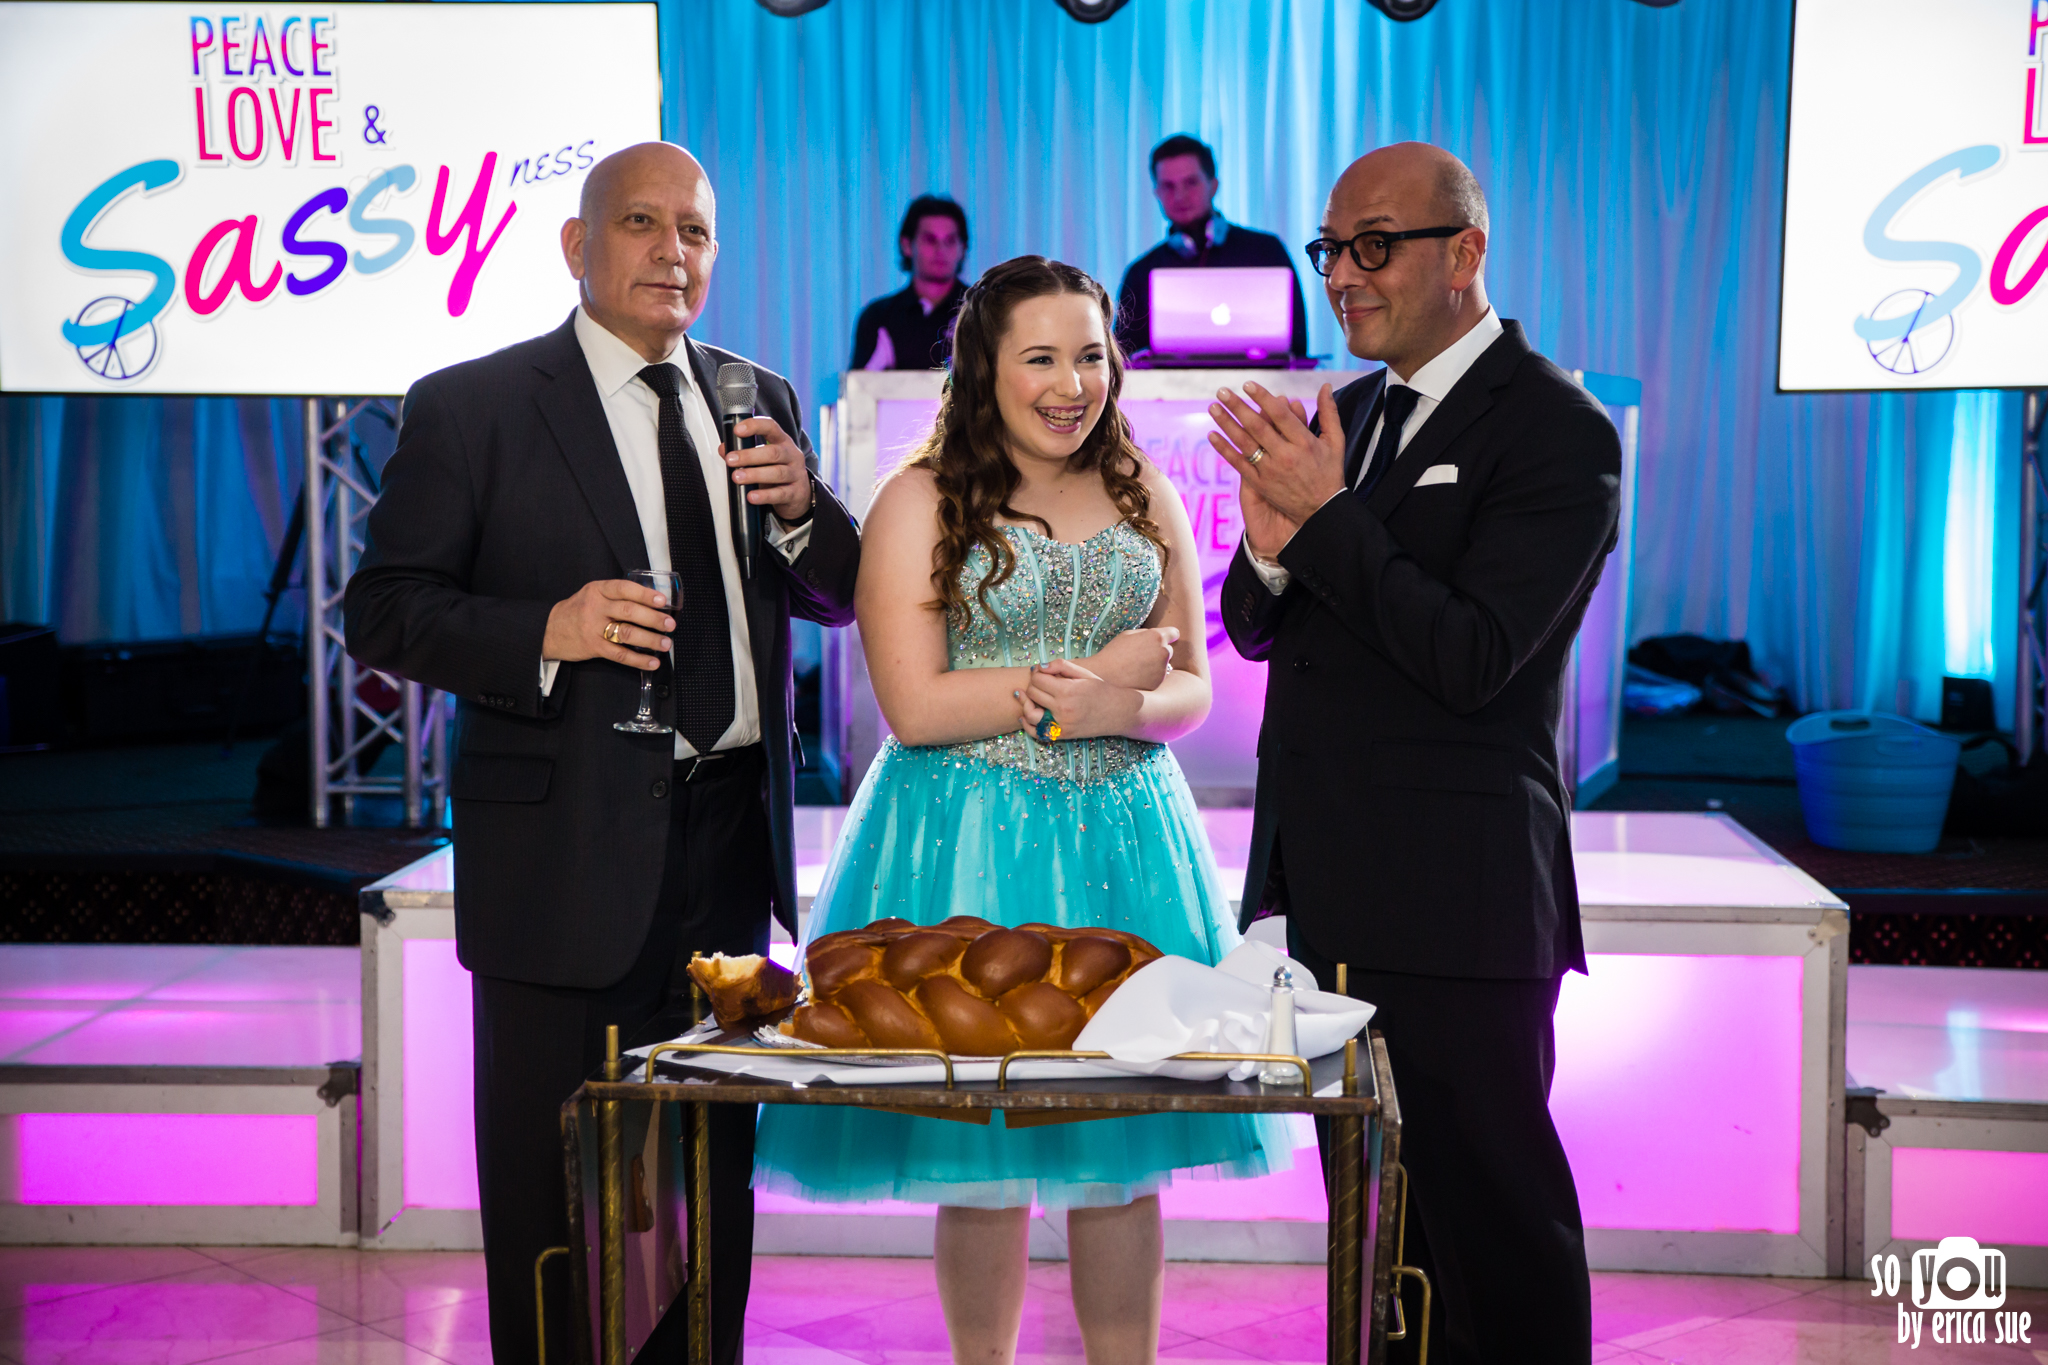 bat-mitzvah-photography-south-florida-broward-kol-ami-plantation-so-you-by-erica-sue-3493.jpg